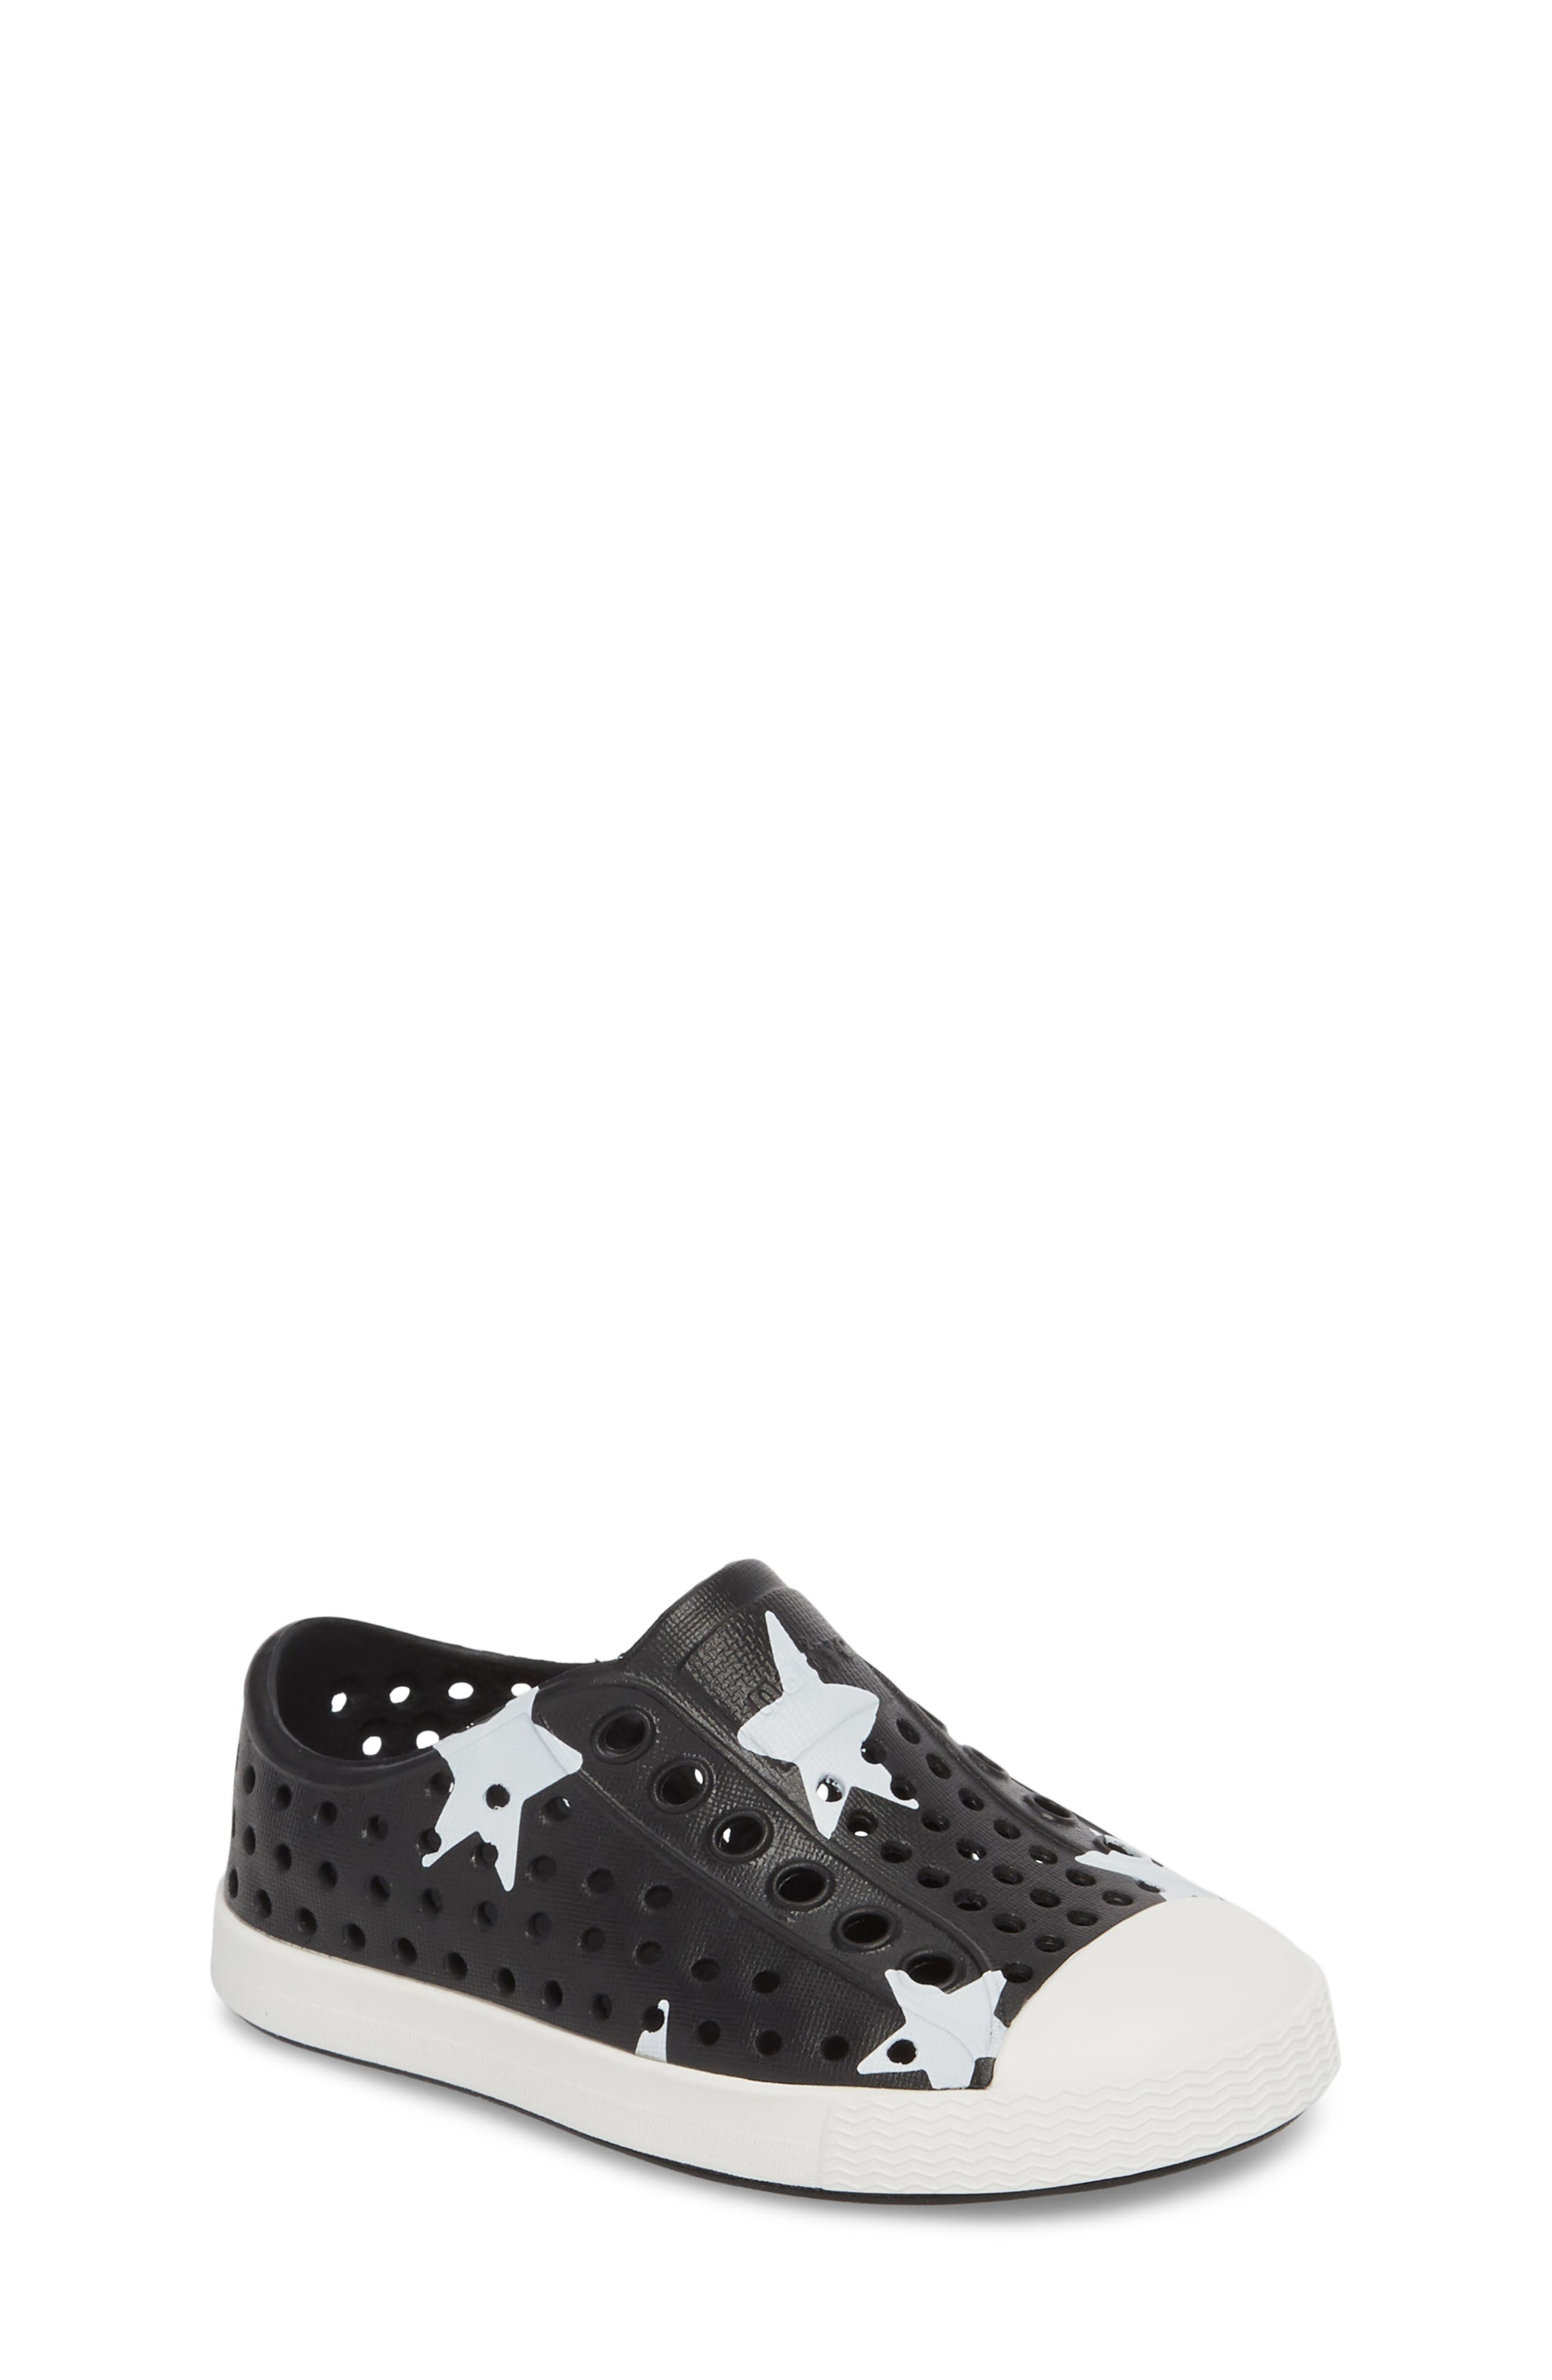 NATIVE SHOES Jefferson Quartz Slip-On Sneaker, Main, color, JIFFY BLACK/ WHITE/ STAR